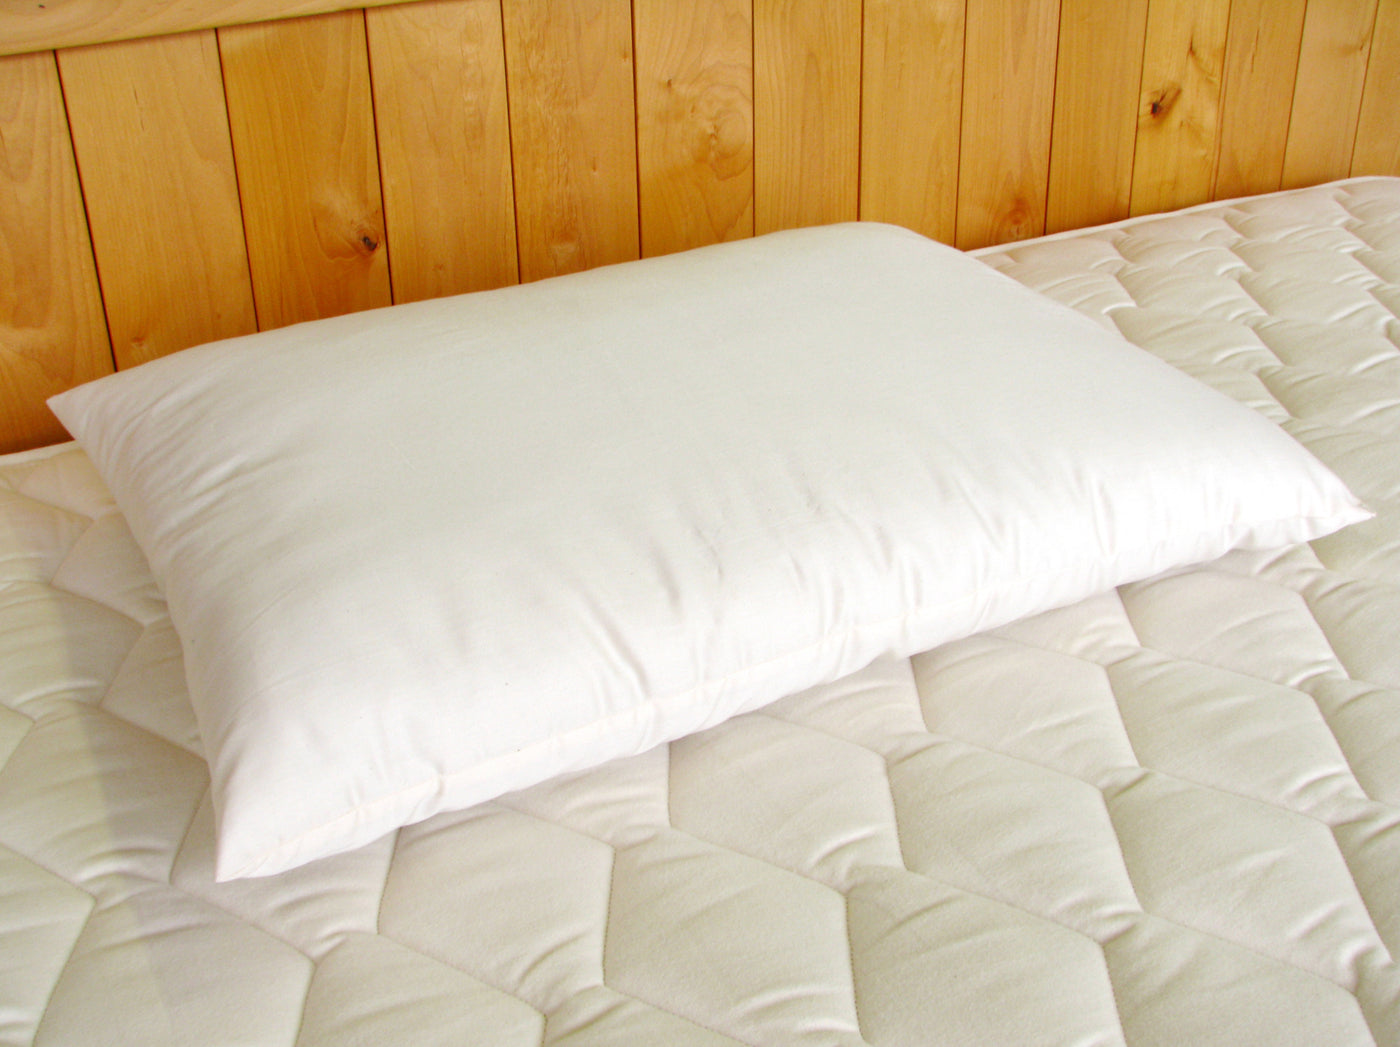 Bed Pillows- Wool filled